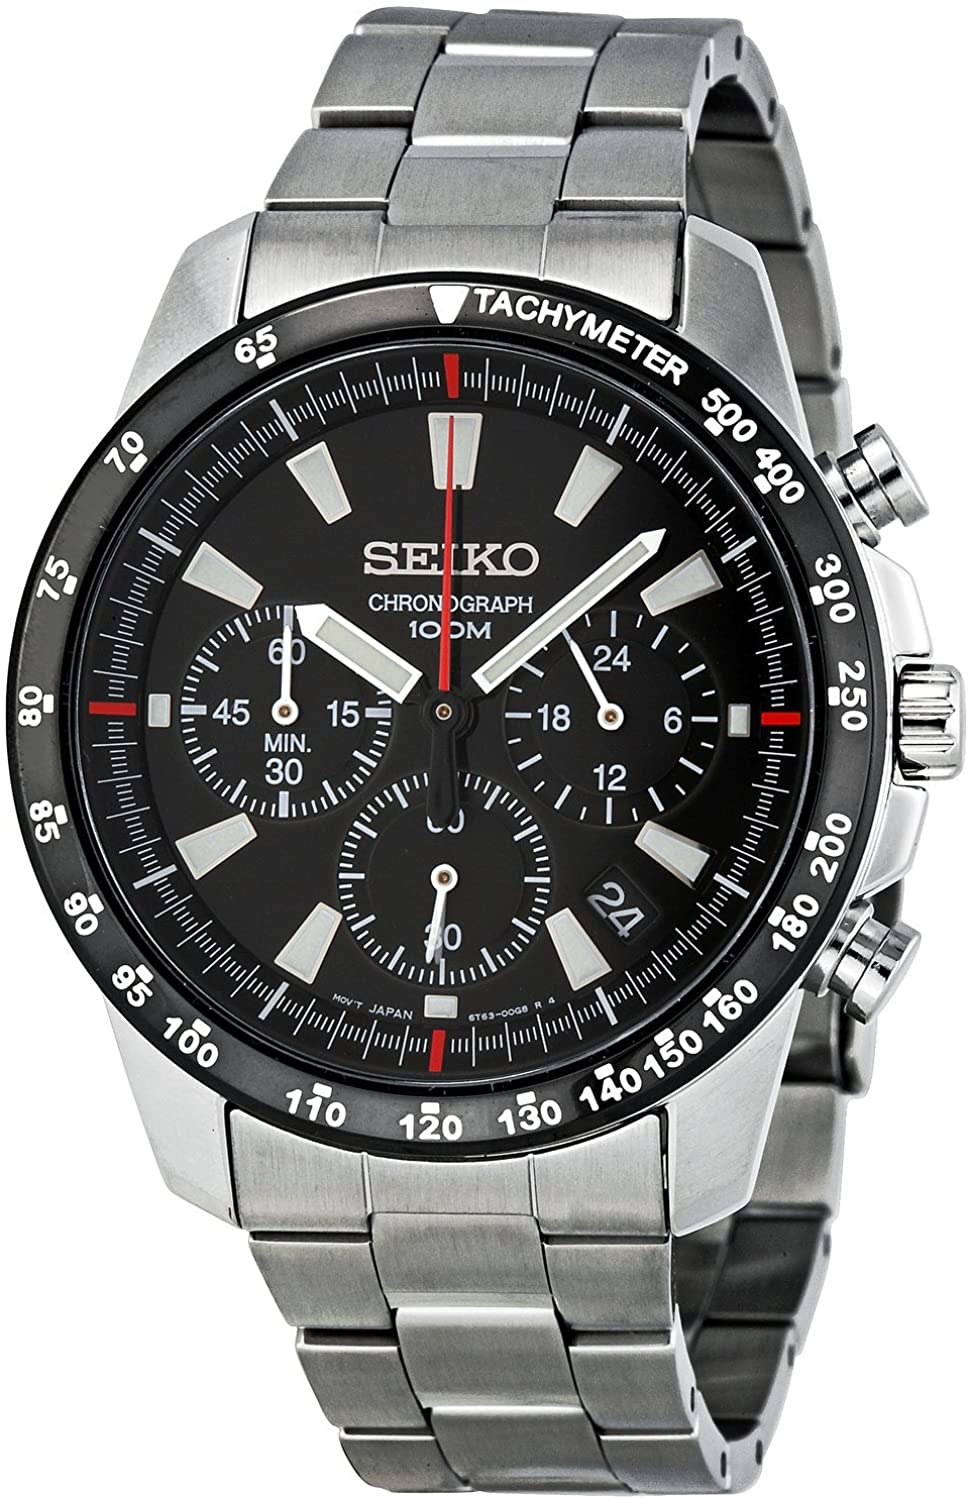 SSB031 Men's Chronograph Stainless Steel